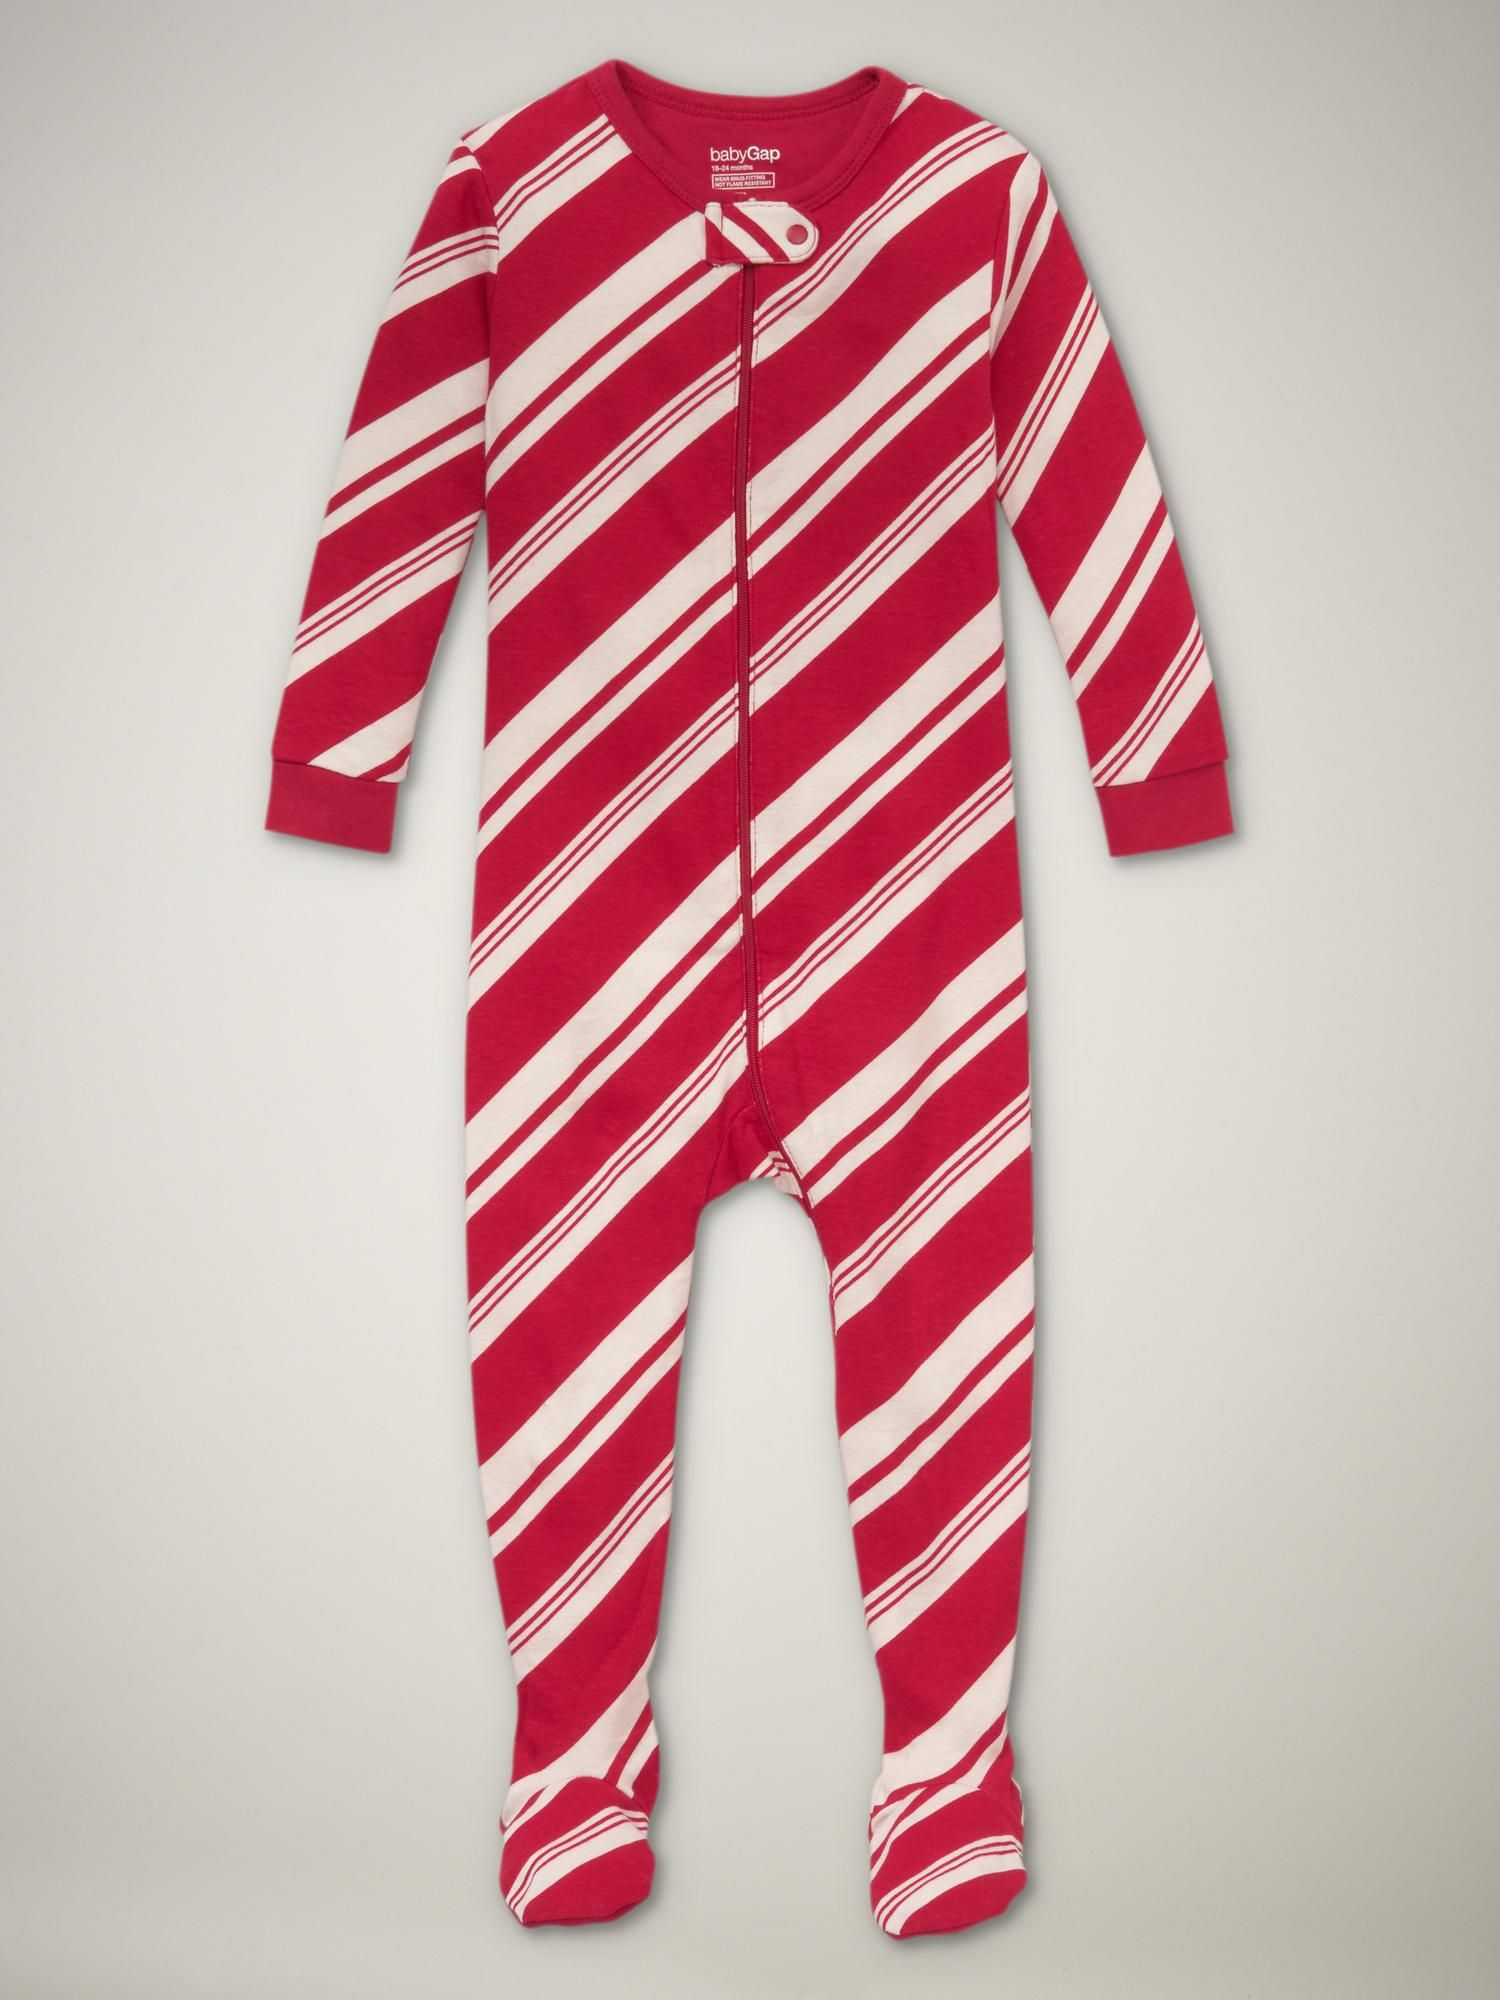 e82219651 Candy cane footed pajamas. (I'm getting one for the boy and one for the  girl.)